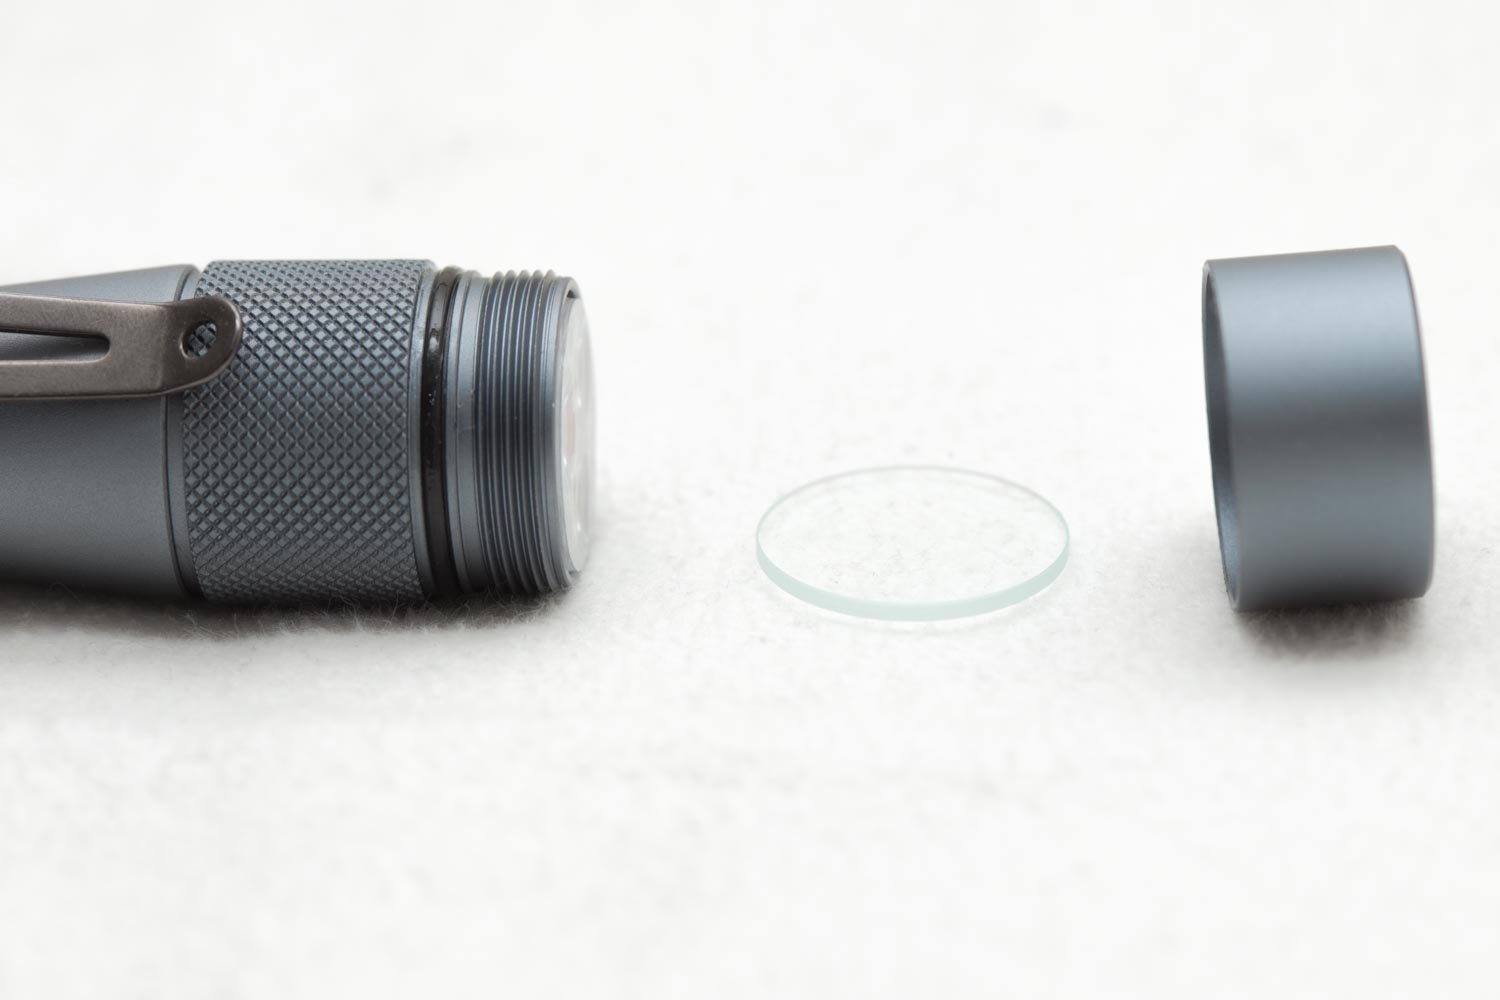 flashlight optics